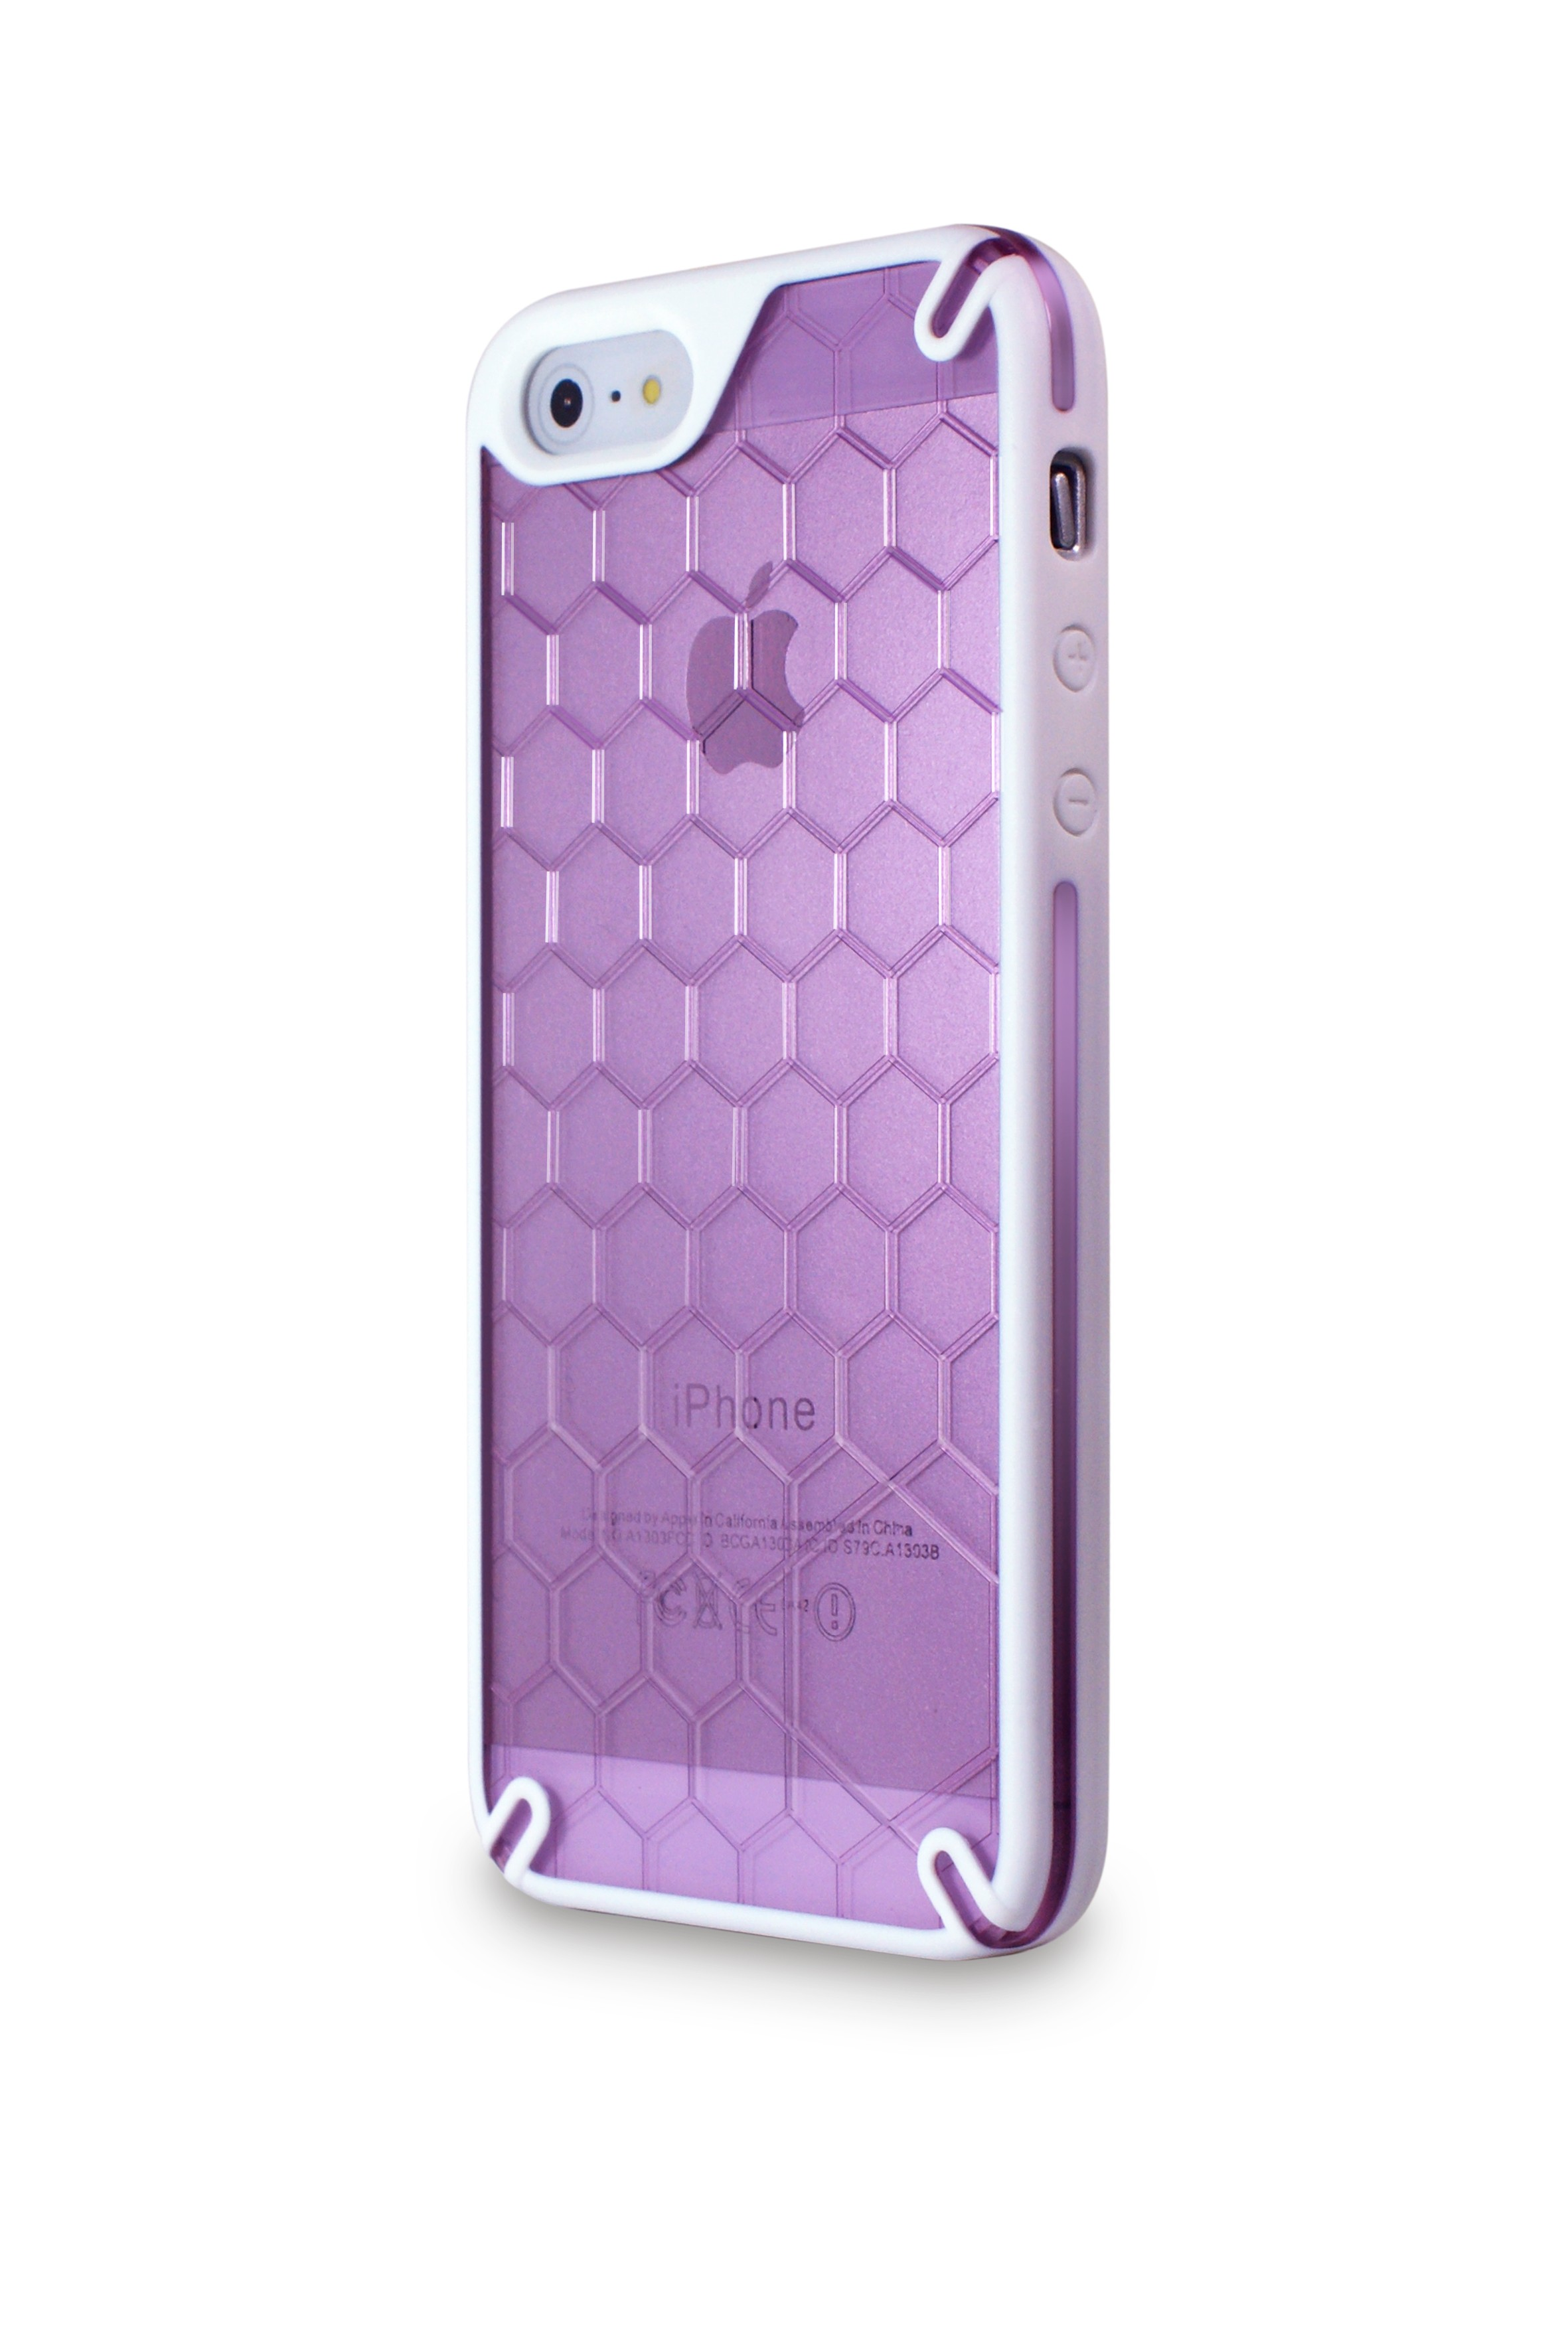 Ozone Bee Hive iPhone 5 Cover Purple (HT-IP5-03-PL)